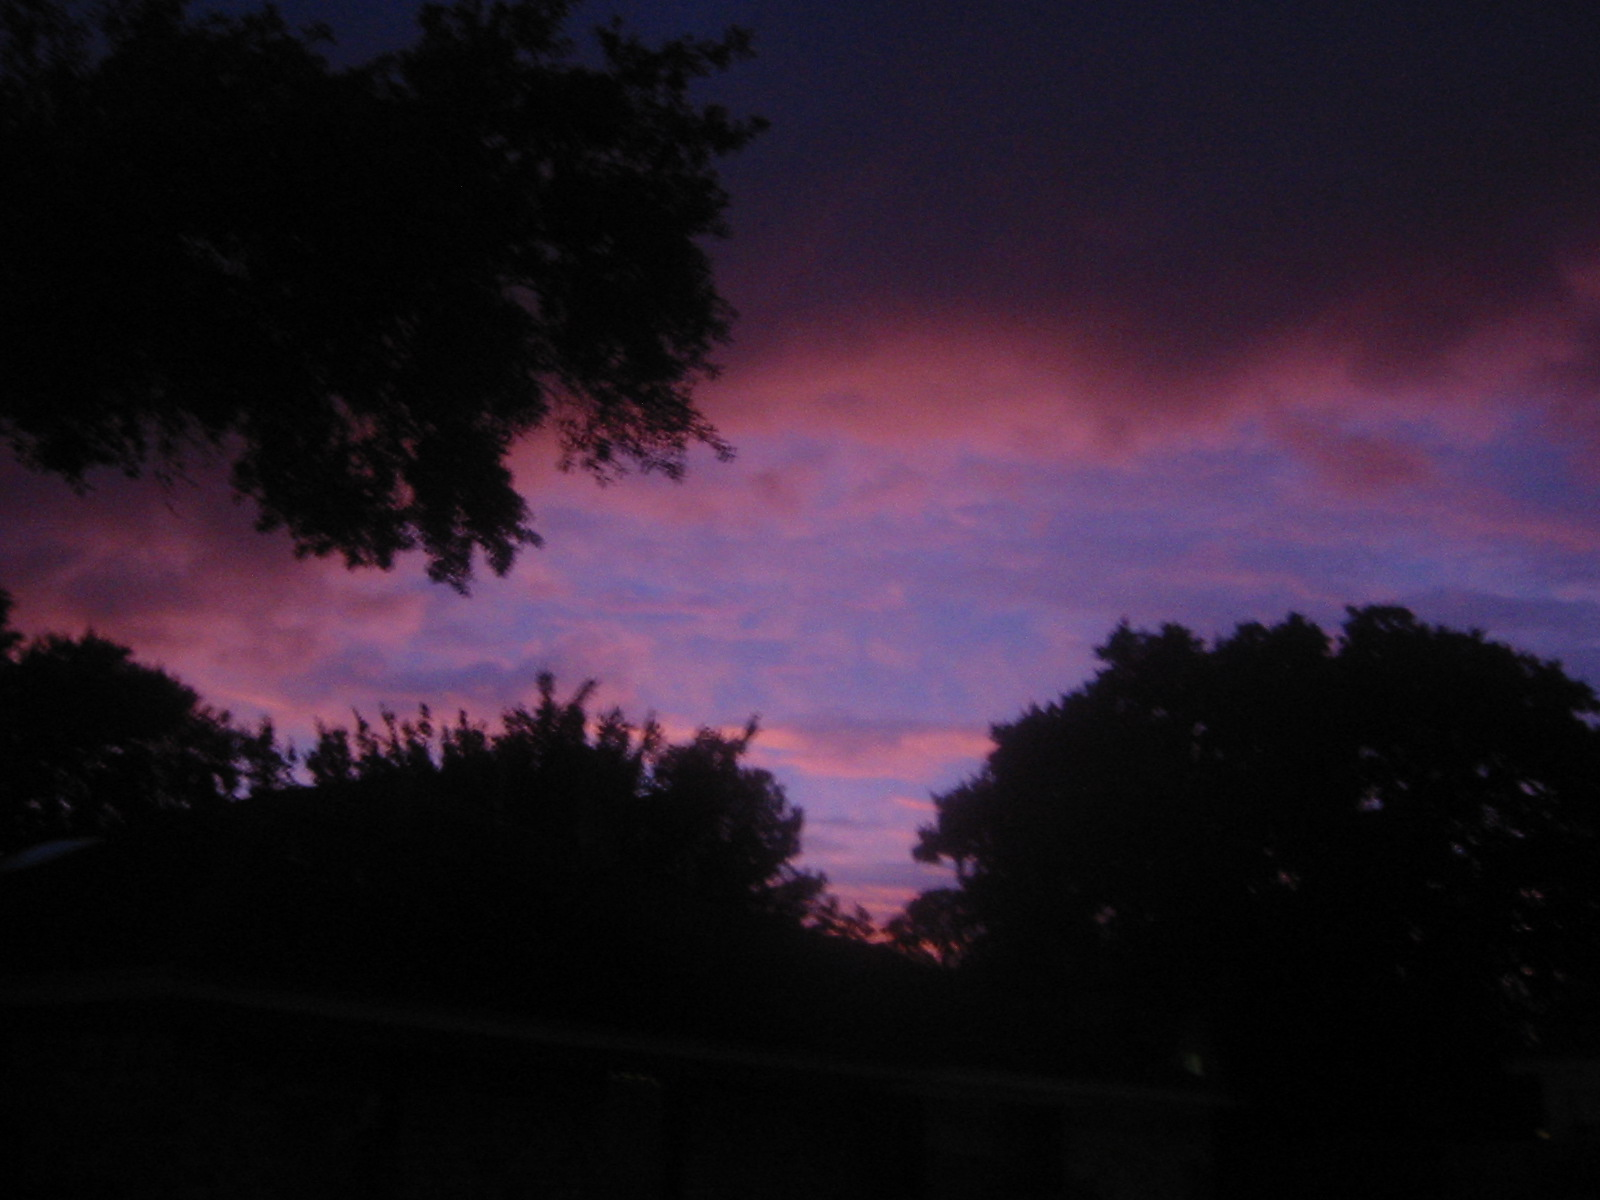 Sunset, Friday night, Sept. 12, 2008